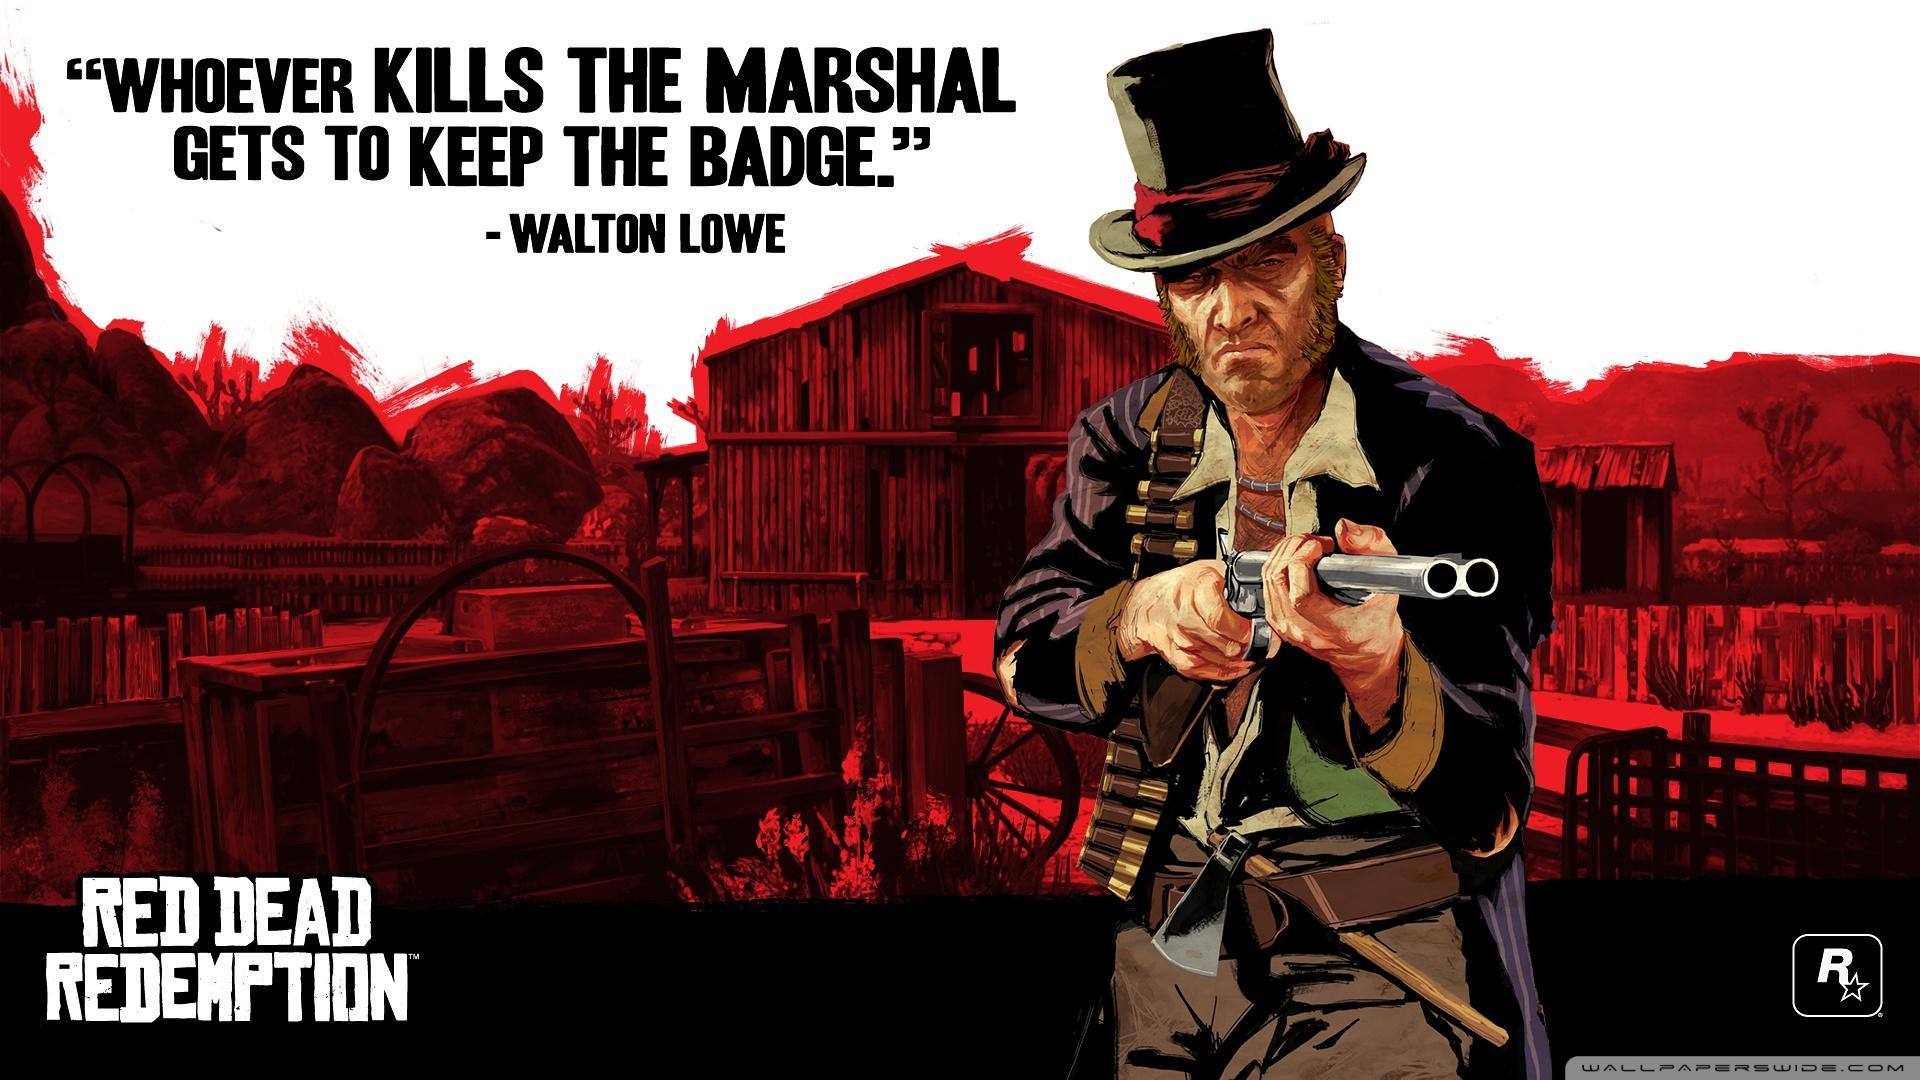 Red Dead Redemption Hd Wallpapers Red Dead Redemption